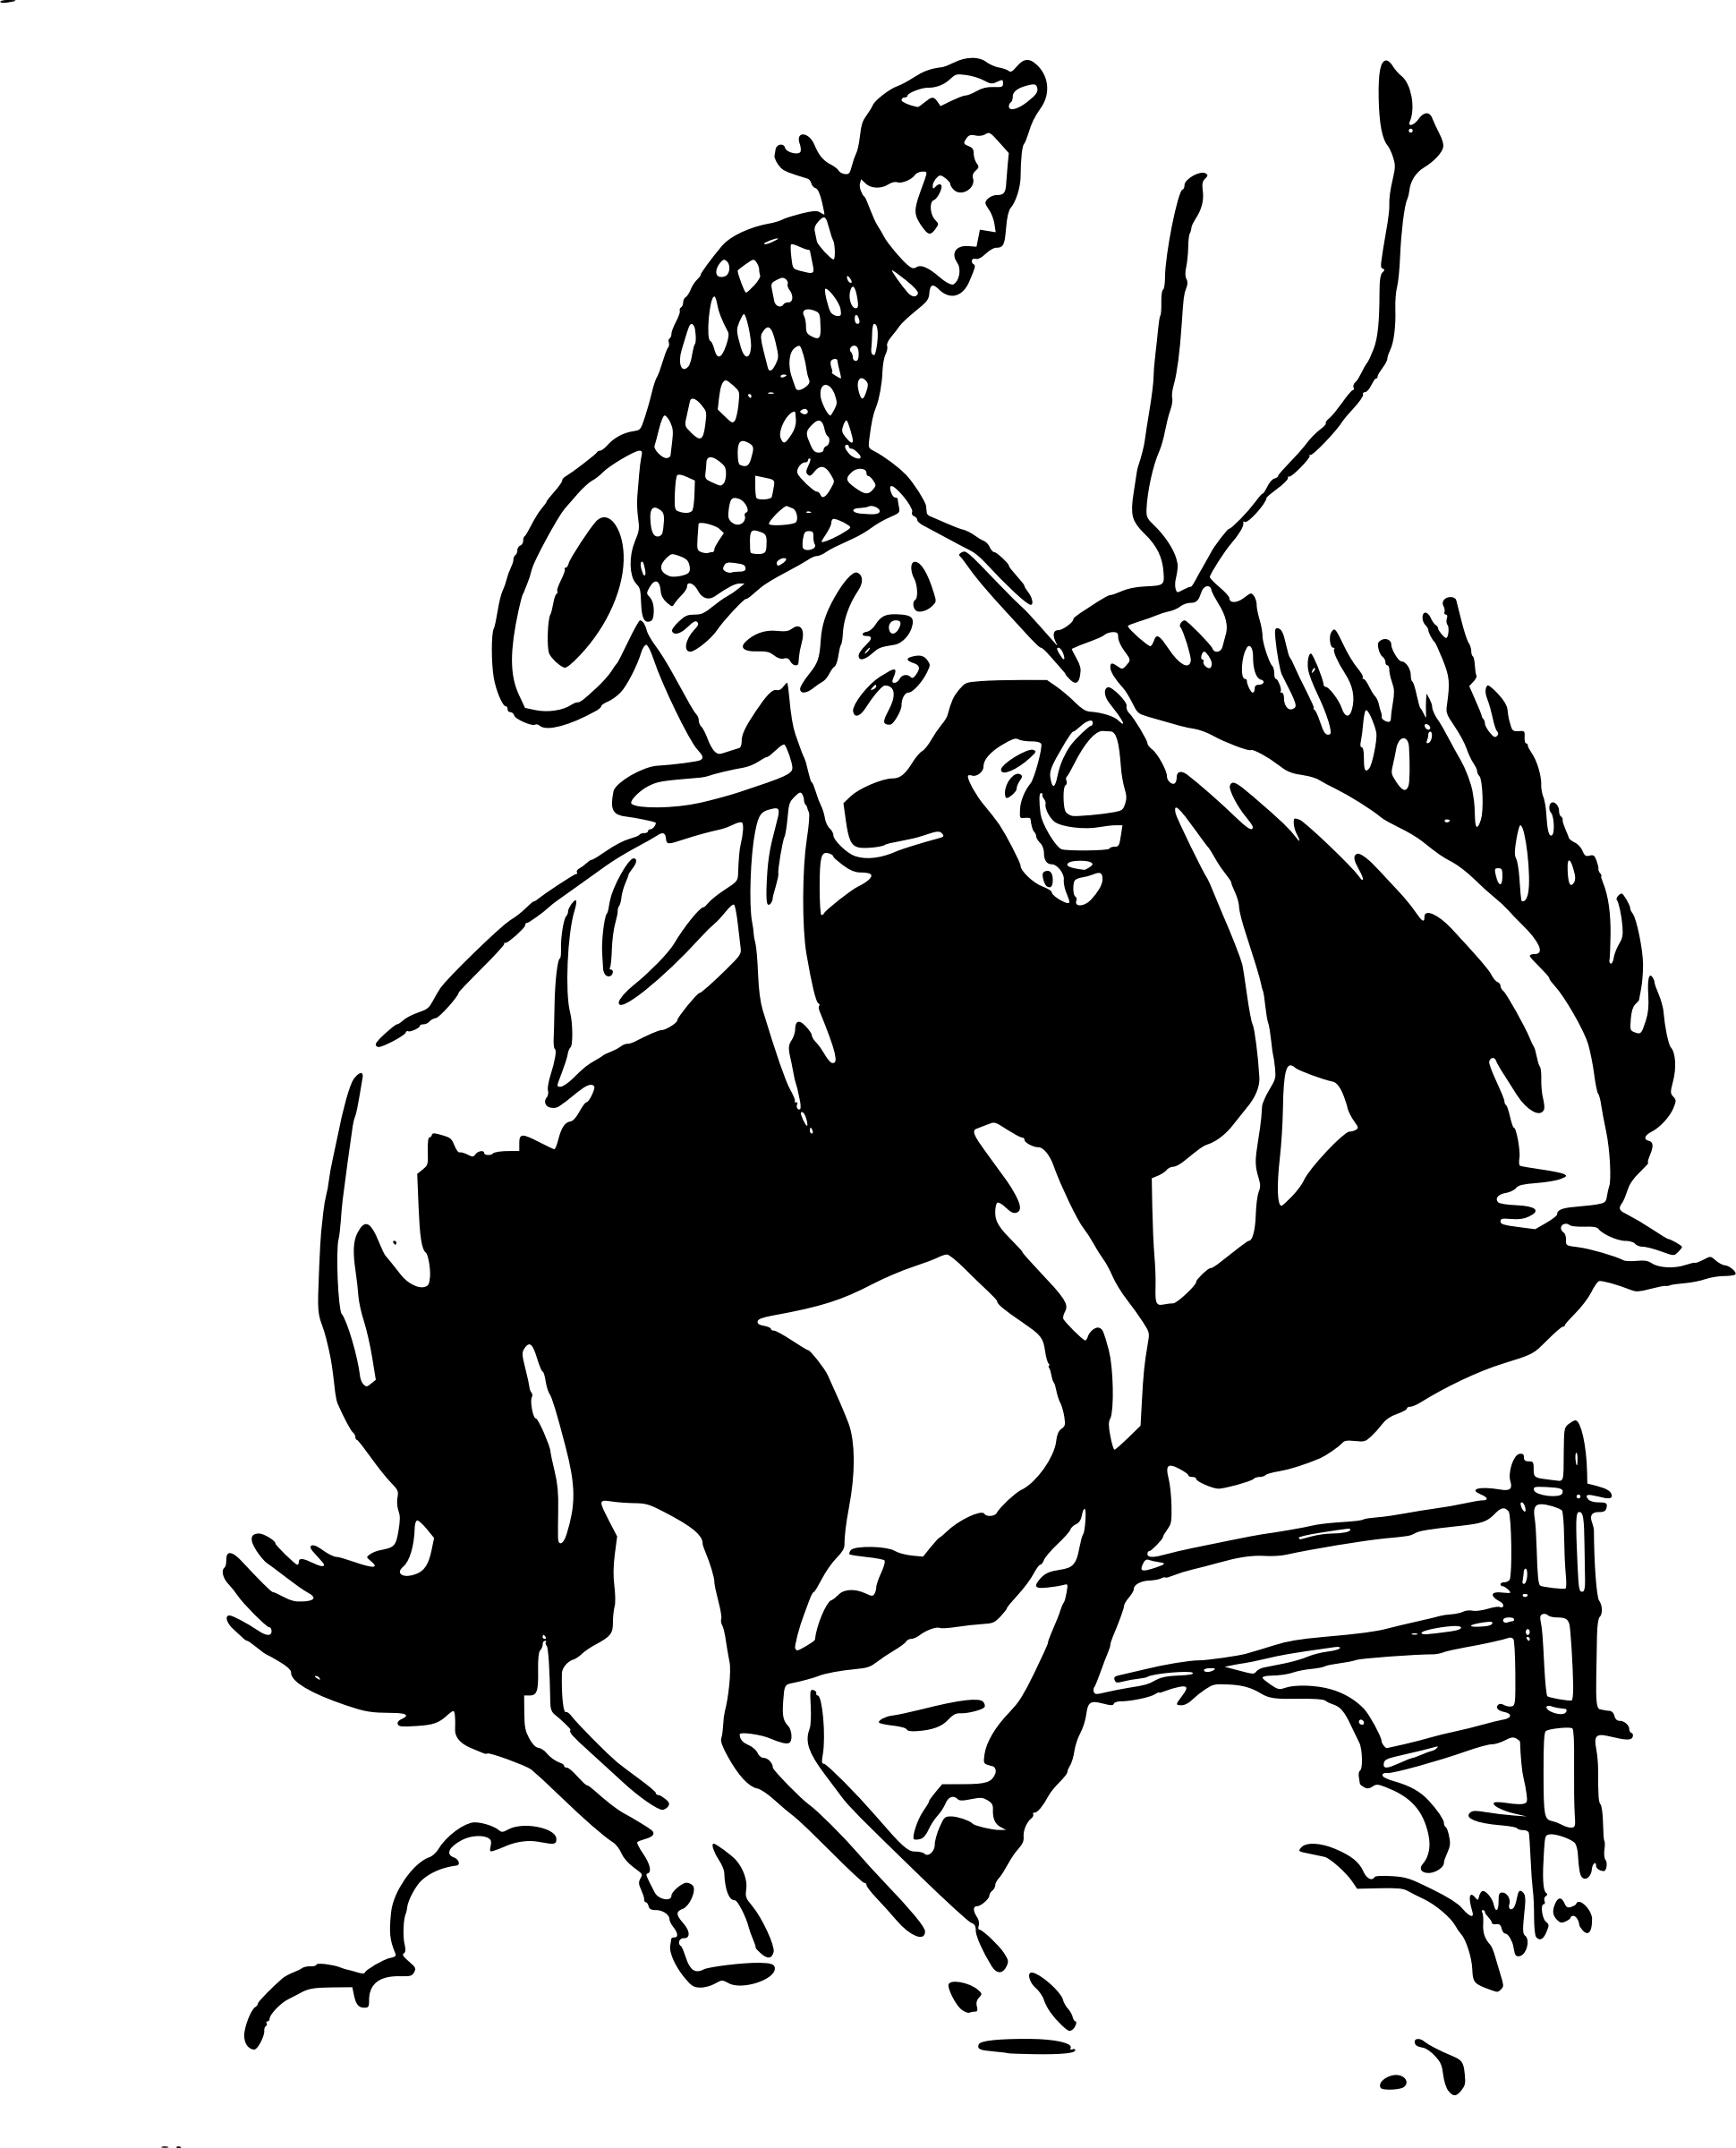 Cowboy transparent png stickpng. Western clipart rodeo png free